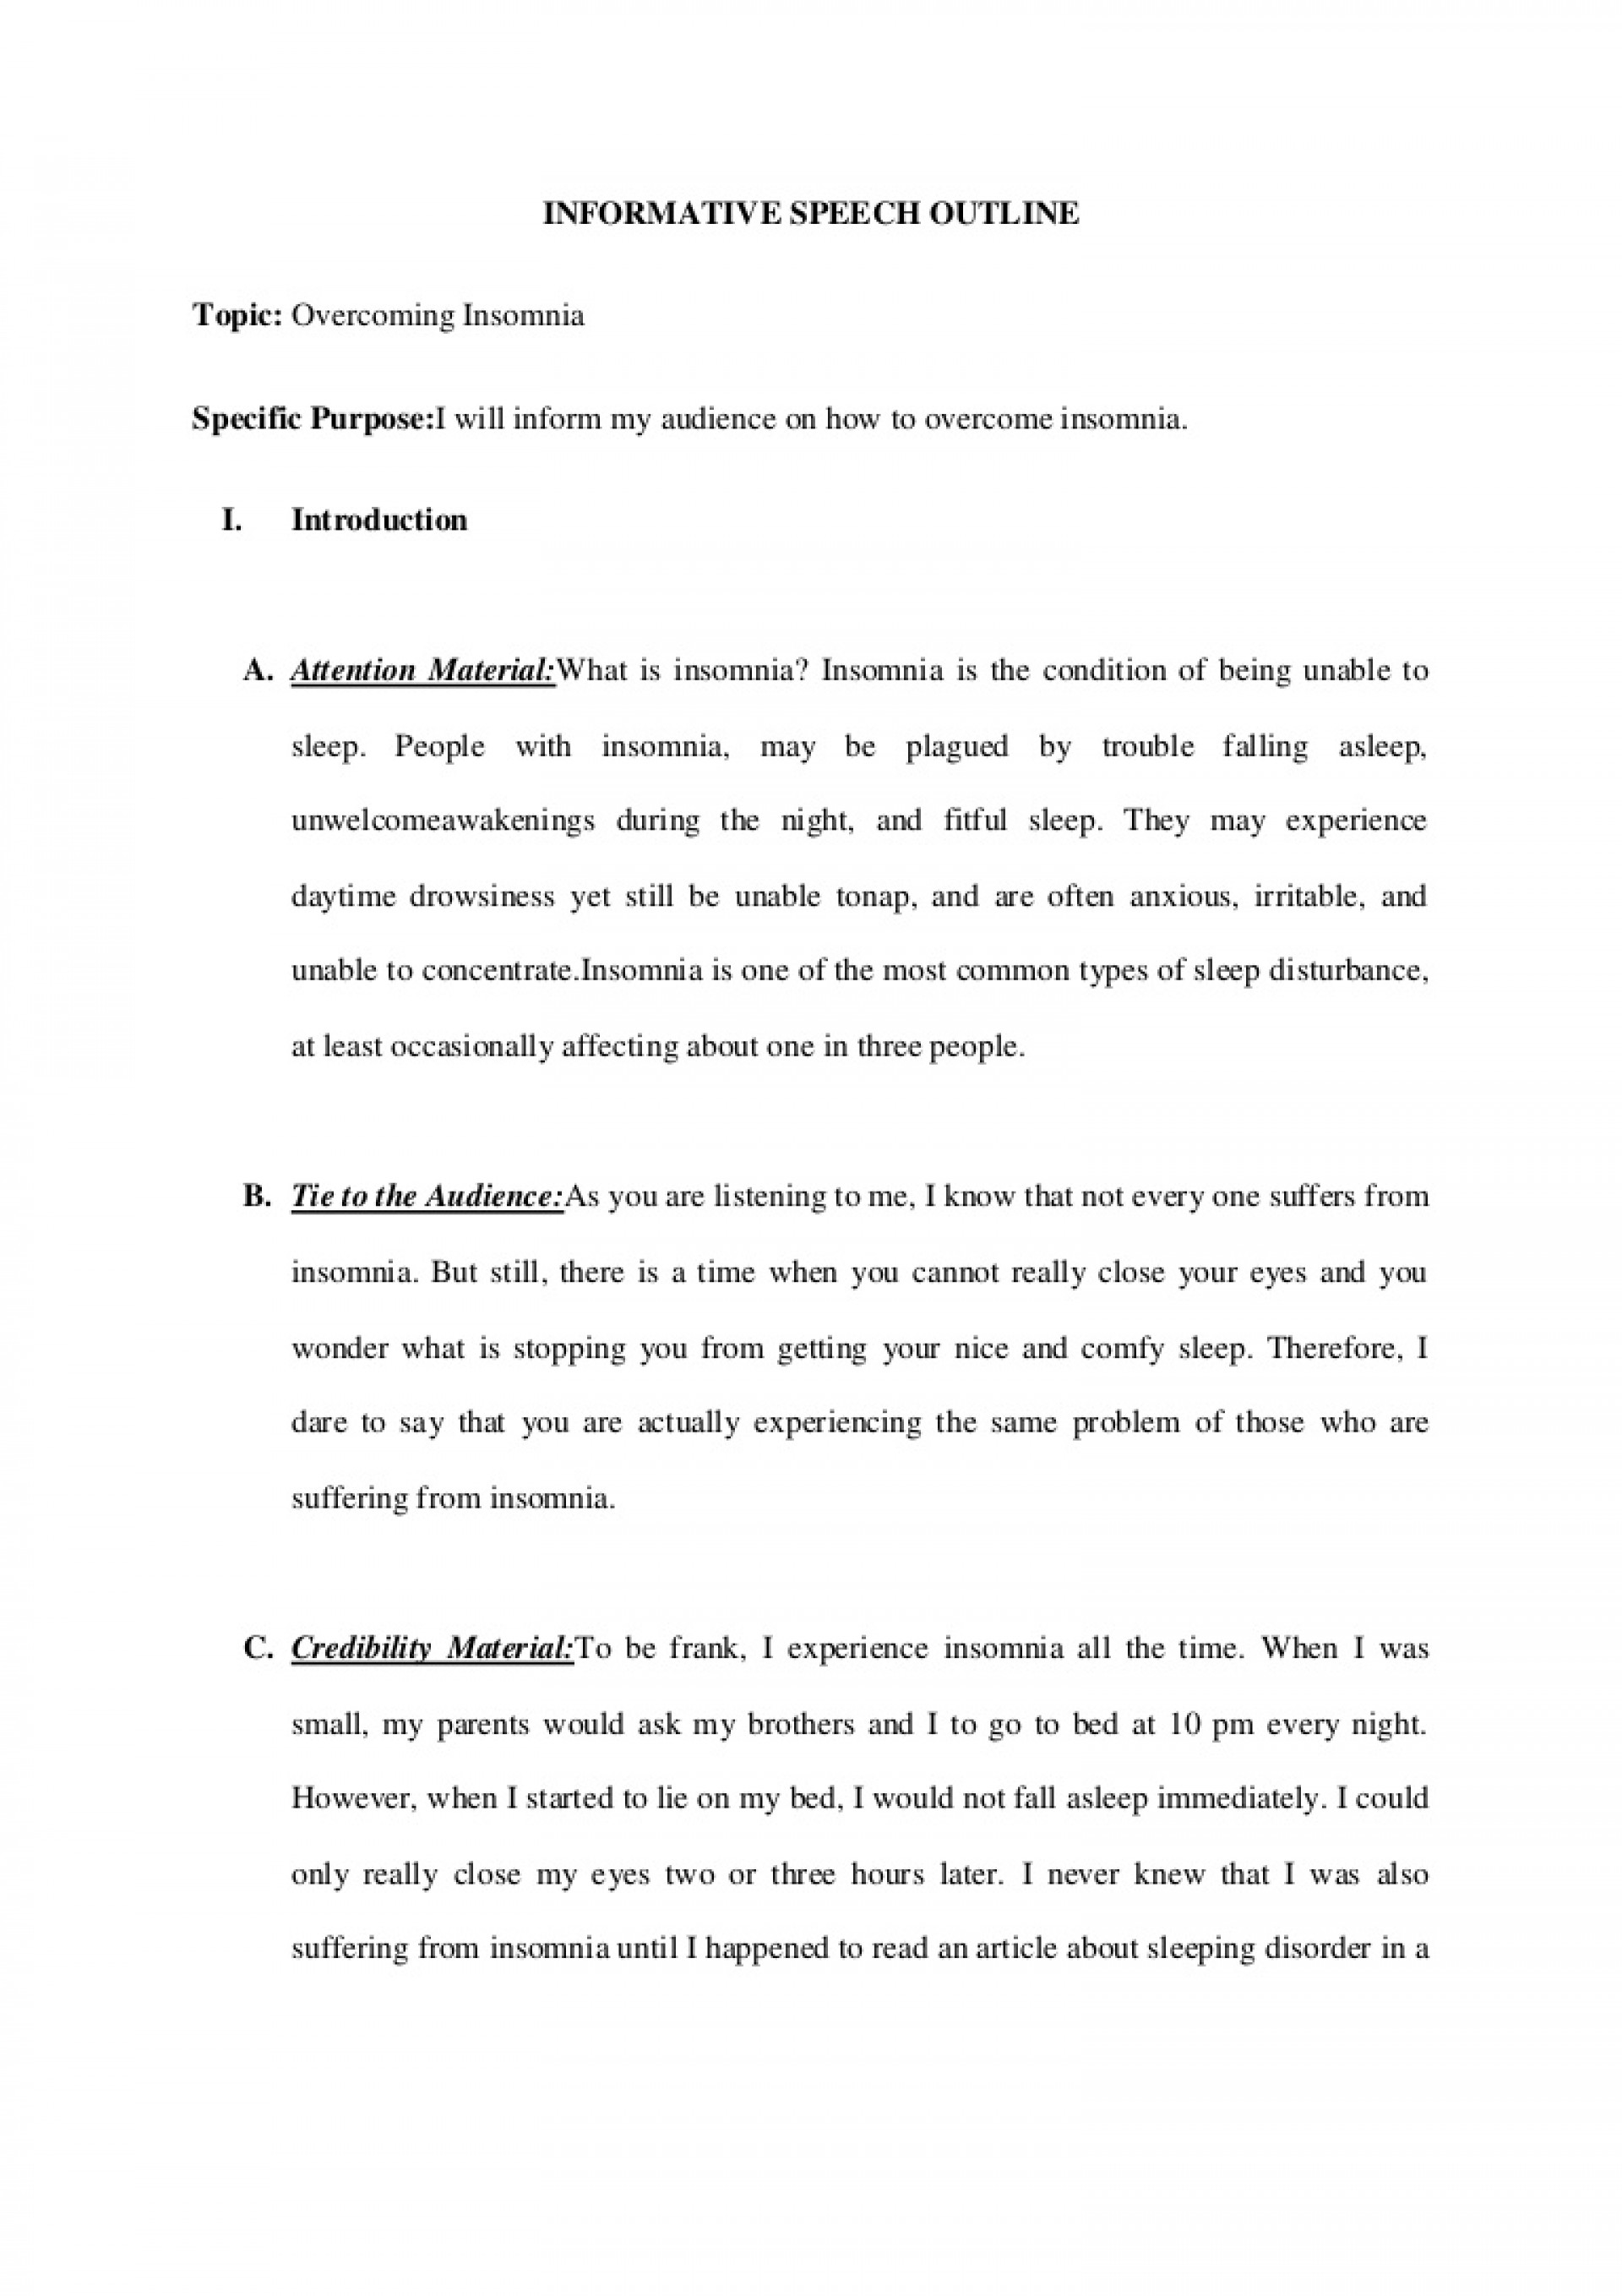 010 Informativespeechoutlineovercomeinsomnia Phpapp02 Thumbnail Essay Example Animal Fearsome Abuse Cruelty Questions Spm Paper Topics 1920